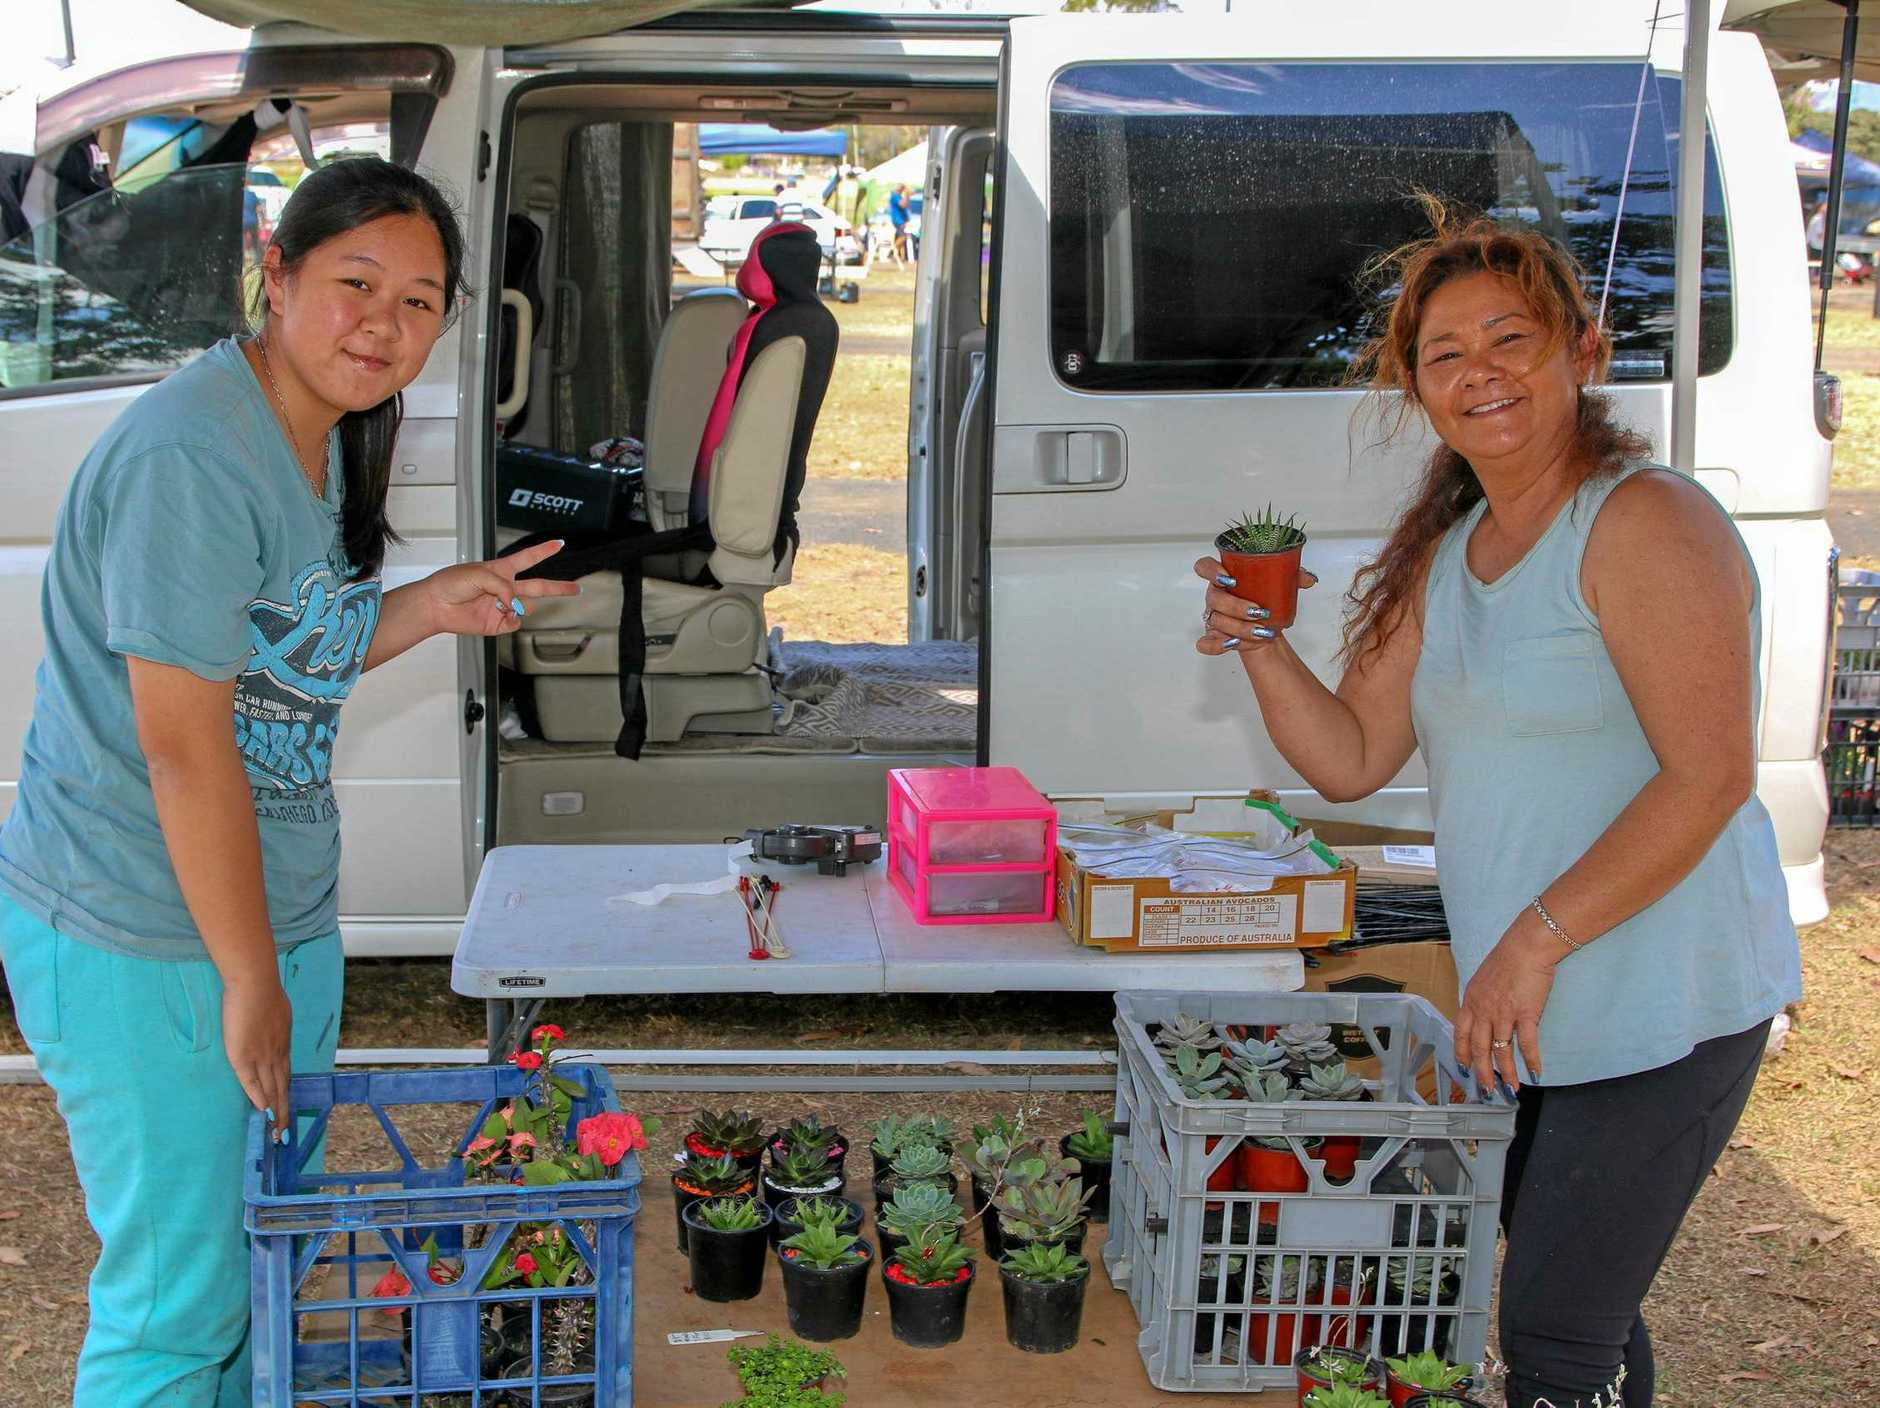 TOP SHOP: Tulang Truong and Narin Shamoun at the Laidley Country Markets this morning. Local and visitors a like to the opportunity to snap up some deals and enjoy the warm weather.